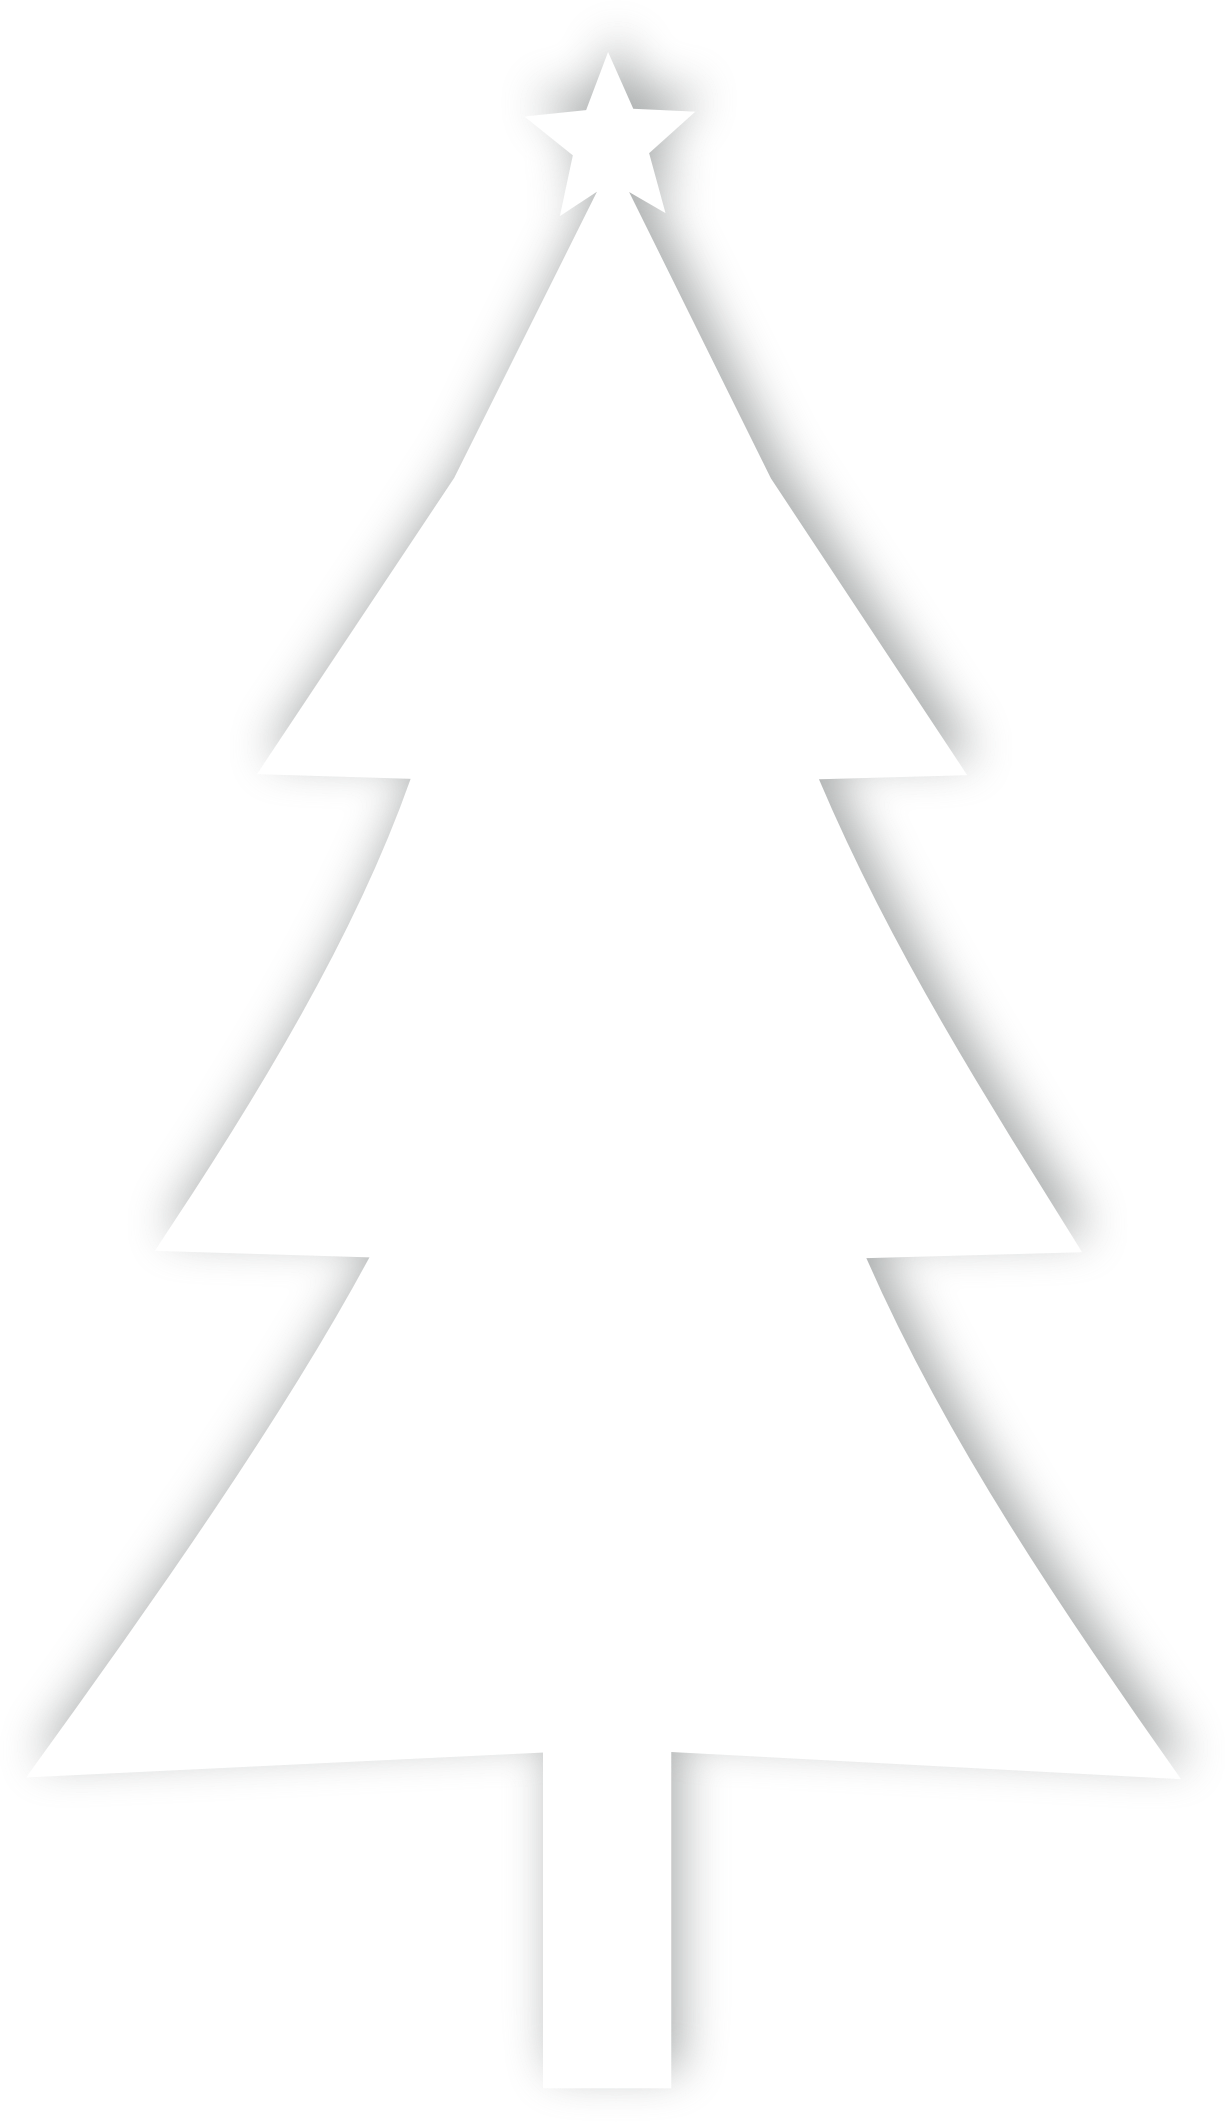 Triangle christmas tree clipart black and white image free Clipart - Christmas tree Silhouette image free